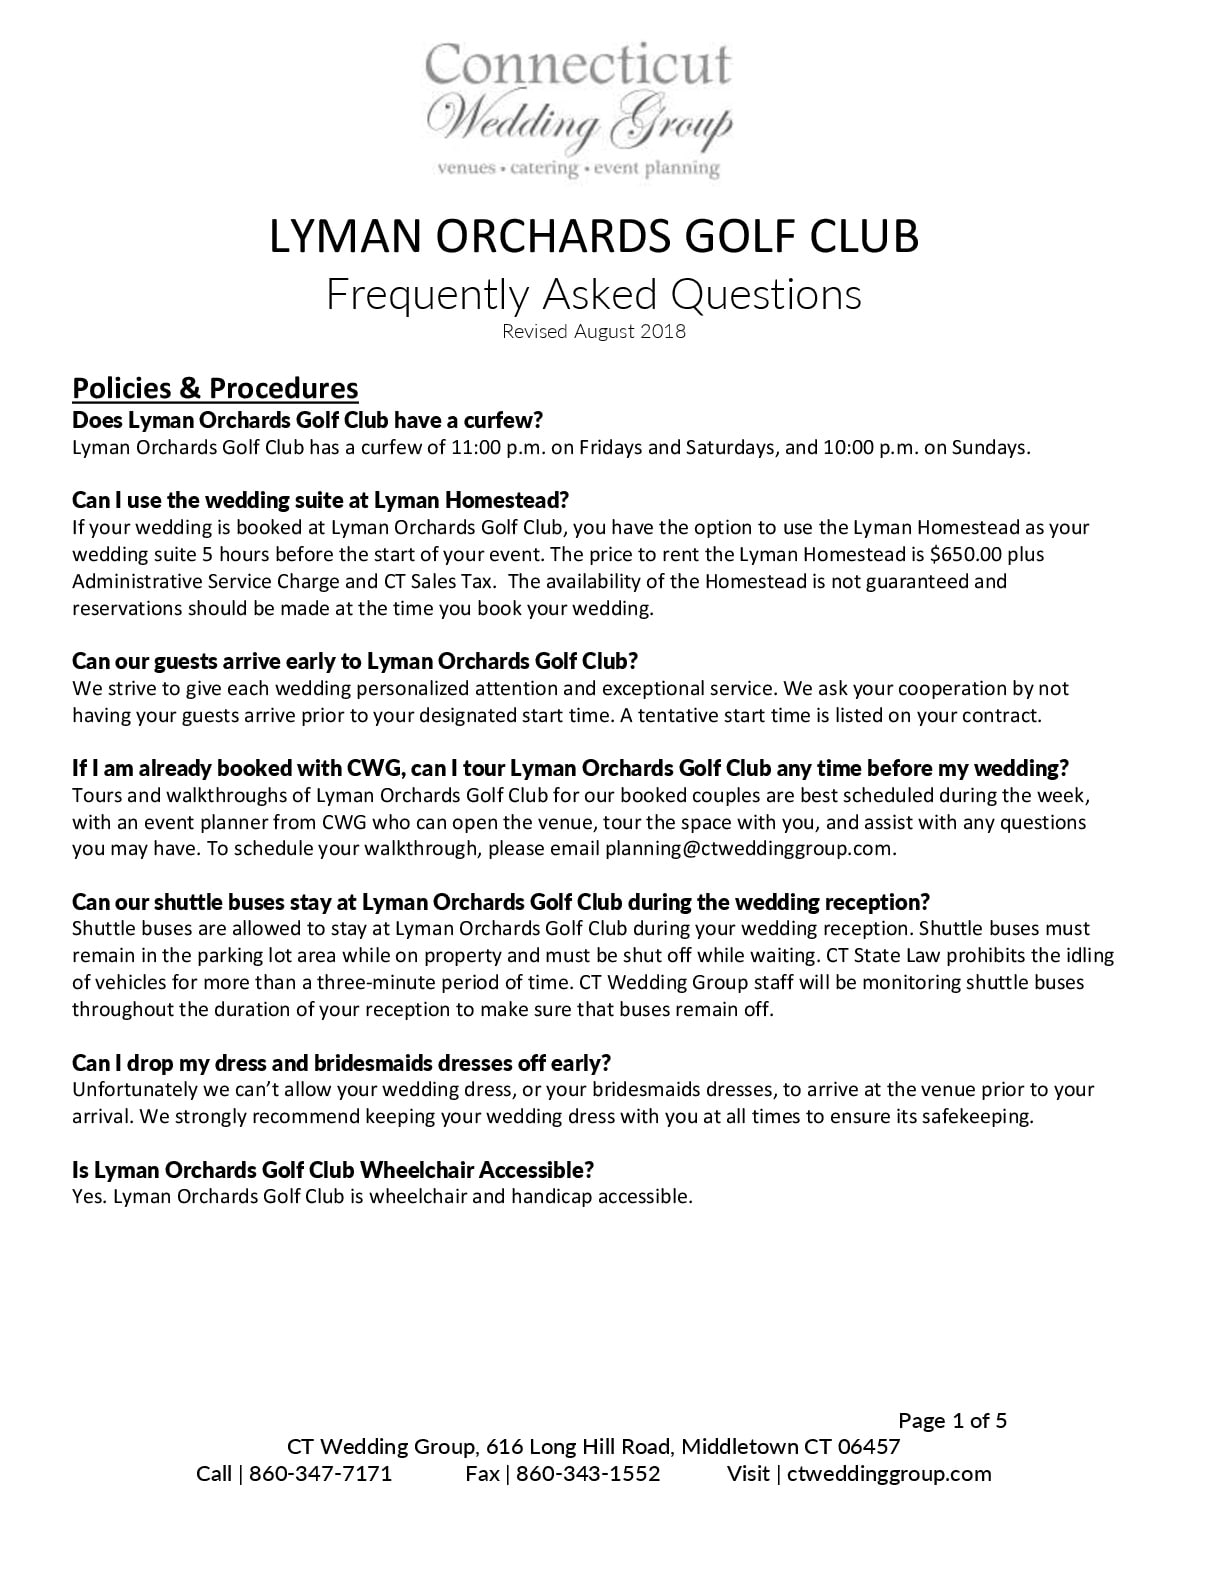 Frequently-Asked-Questions-Lymans-August-2018-001-min